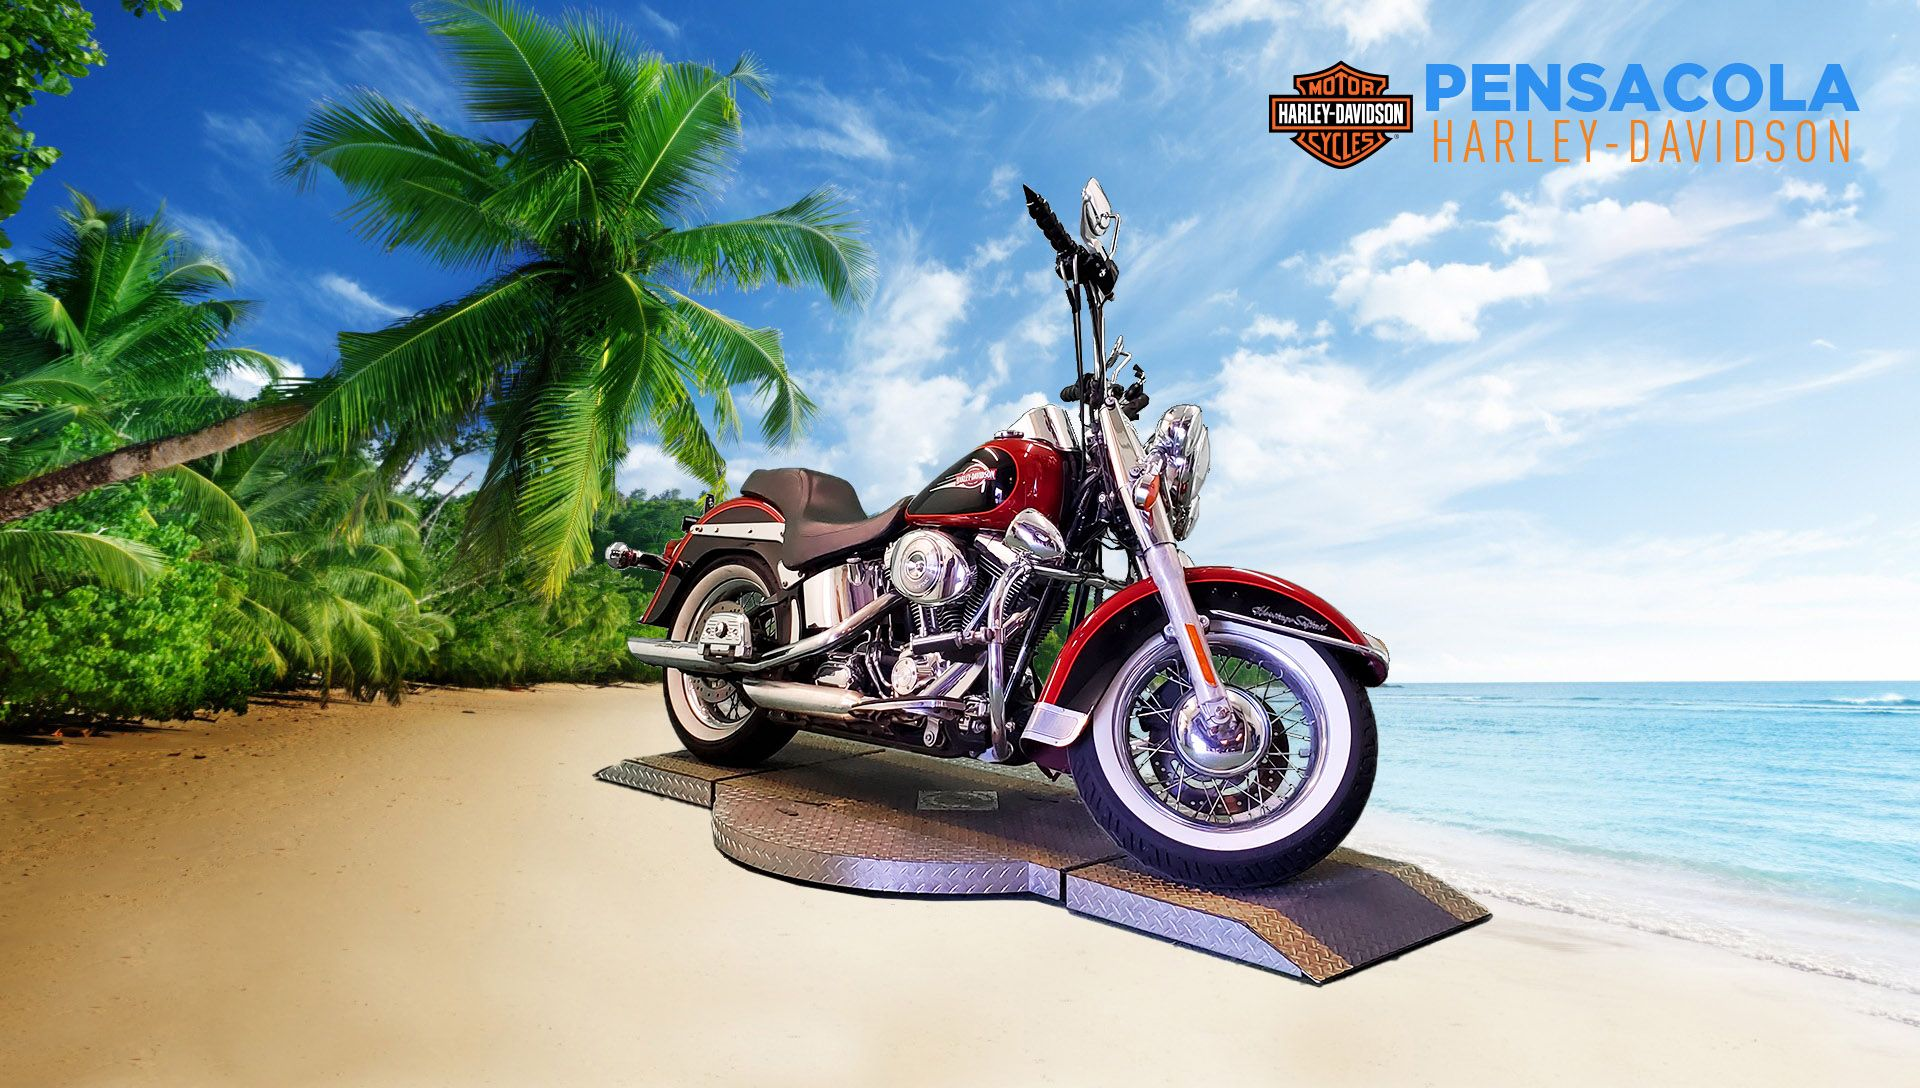 Pre-Owned 2006 Harley-Davidson Heritage Softail Classic FLSTC